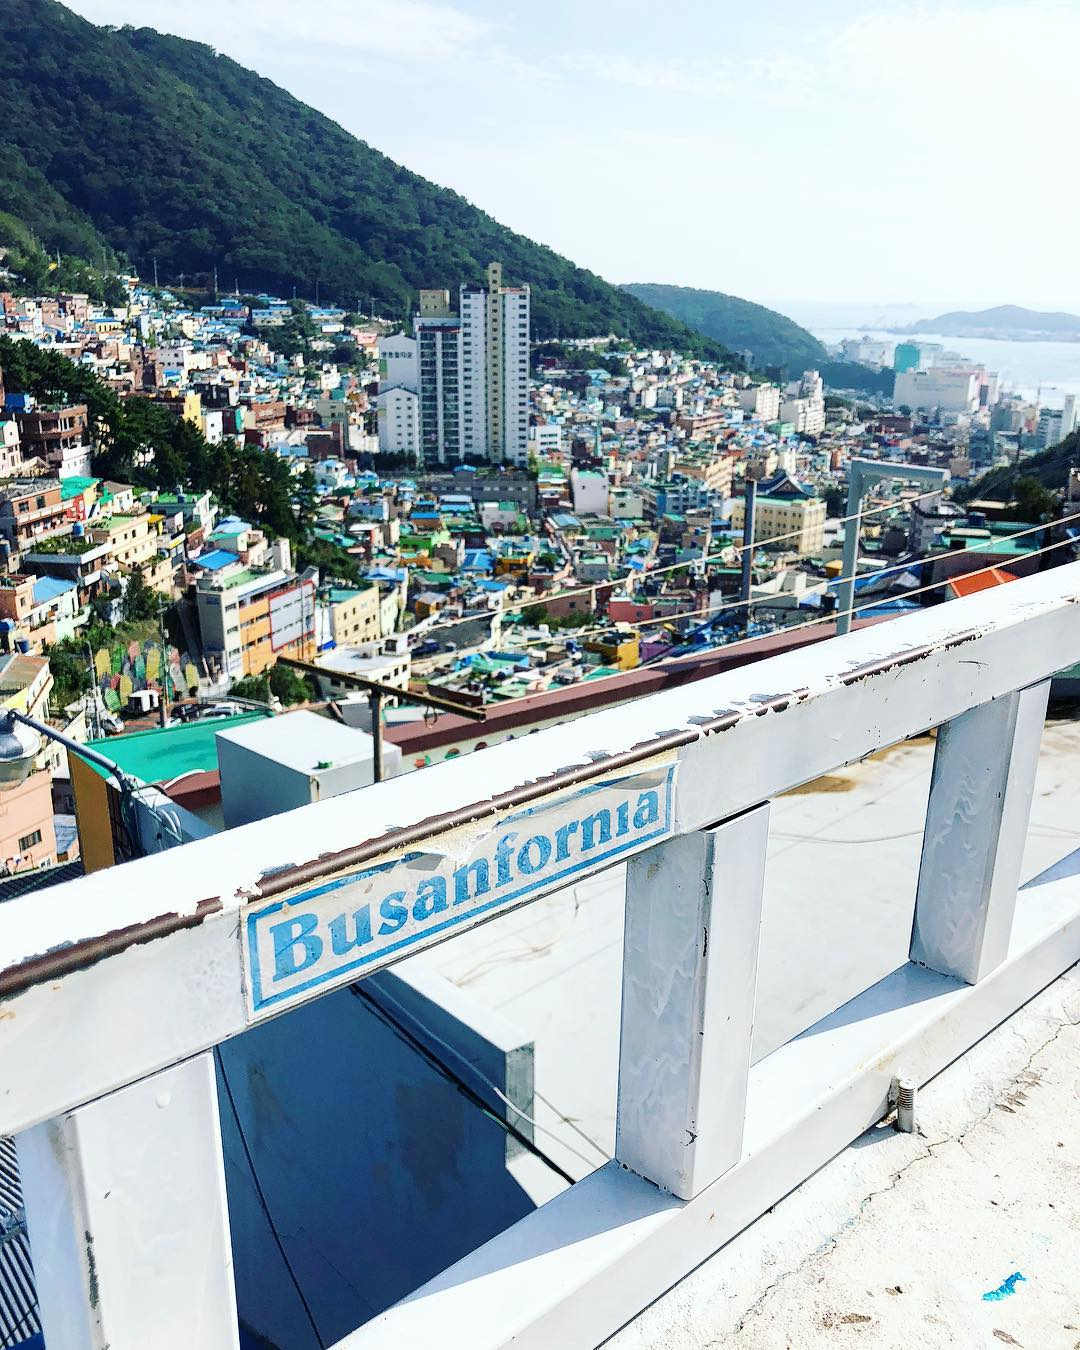 Gamcheon Culture Village - Bird's eye view